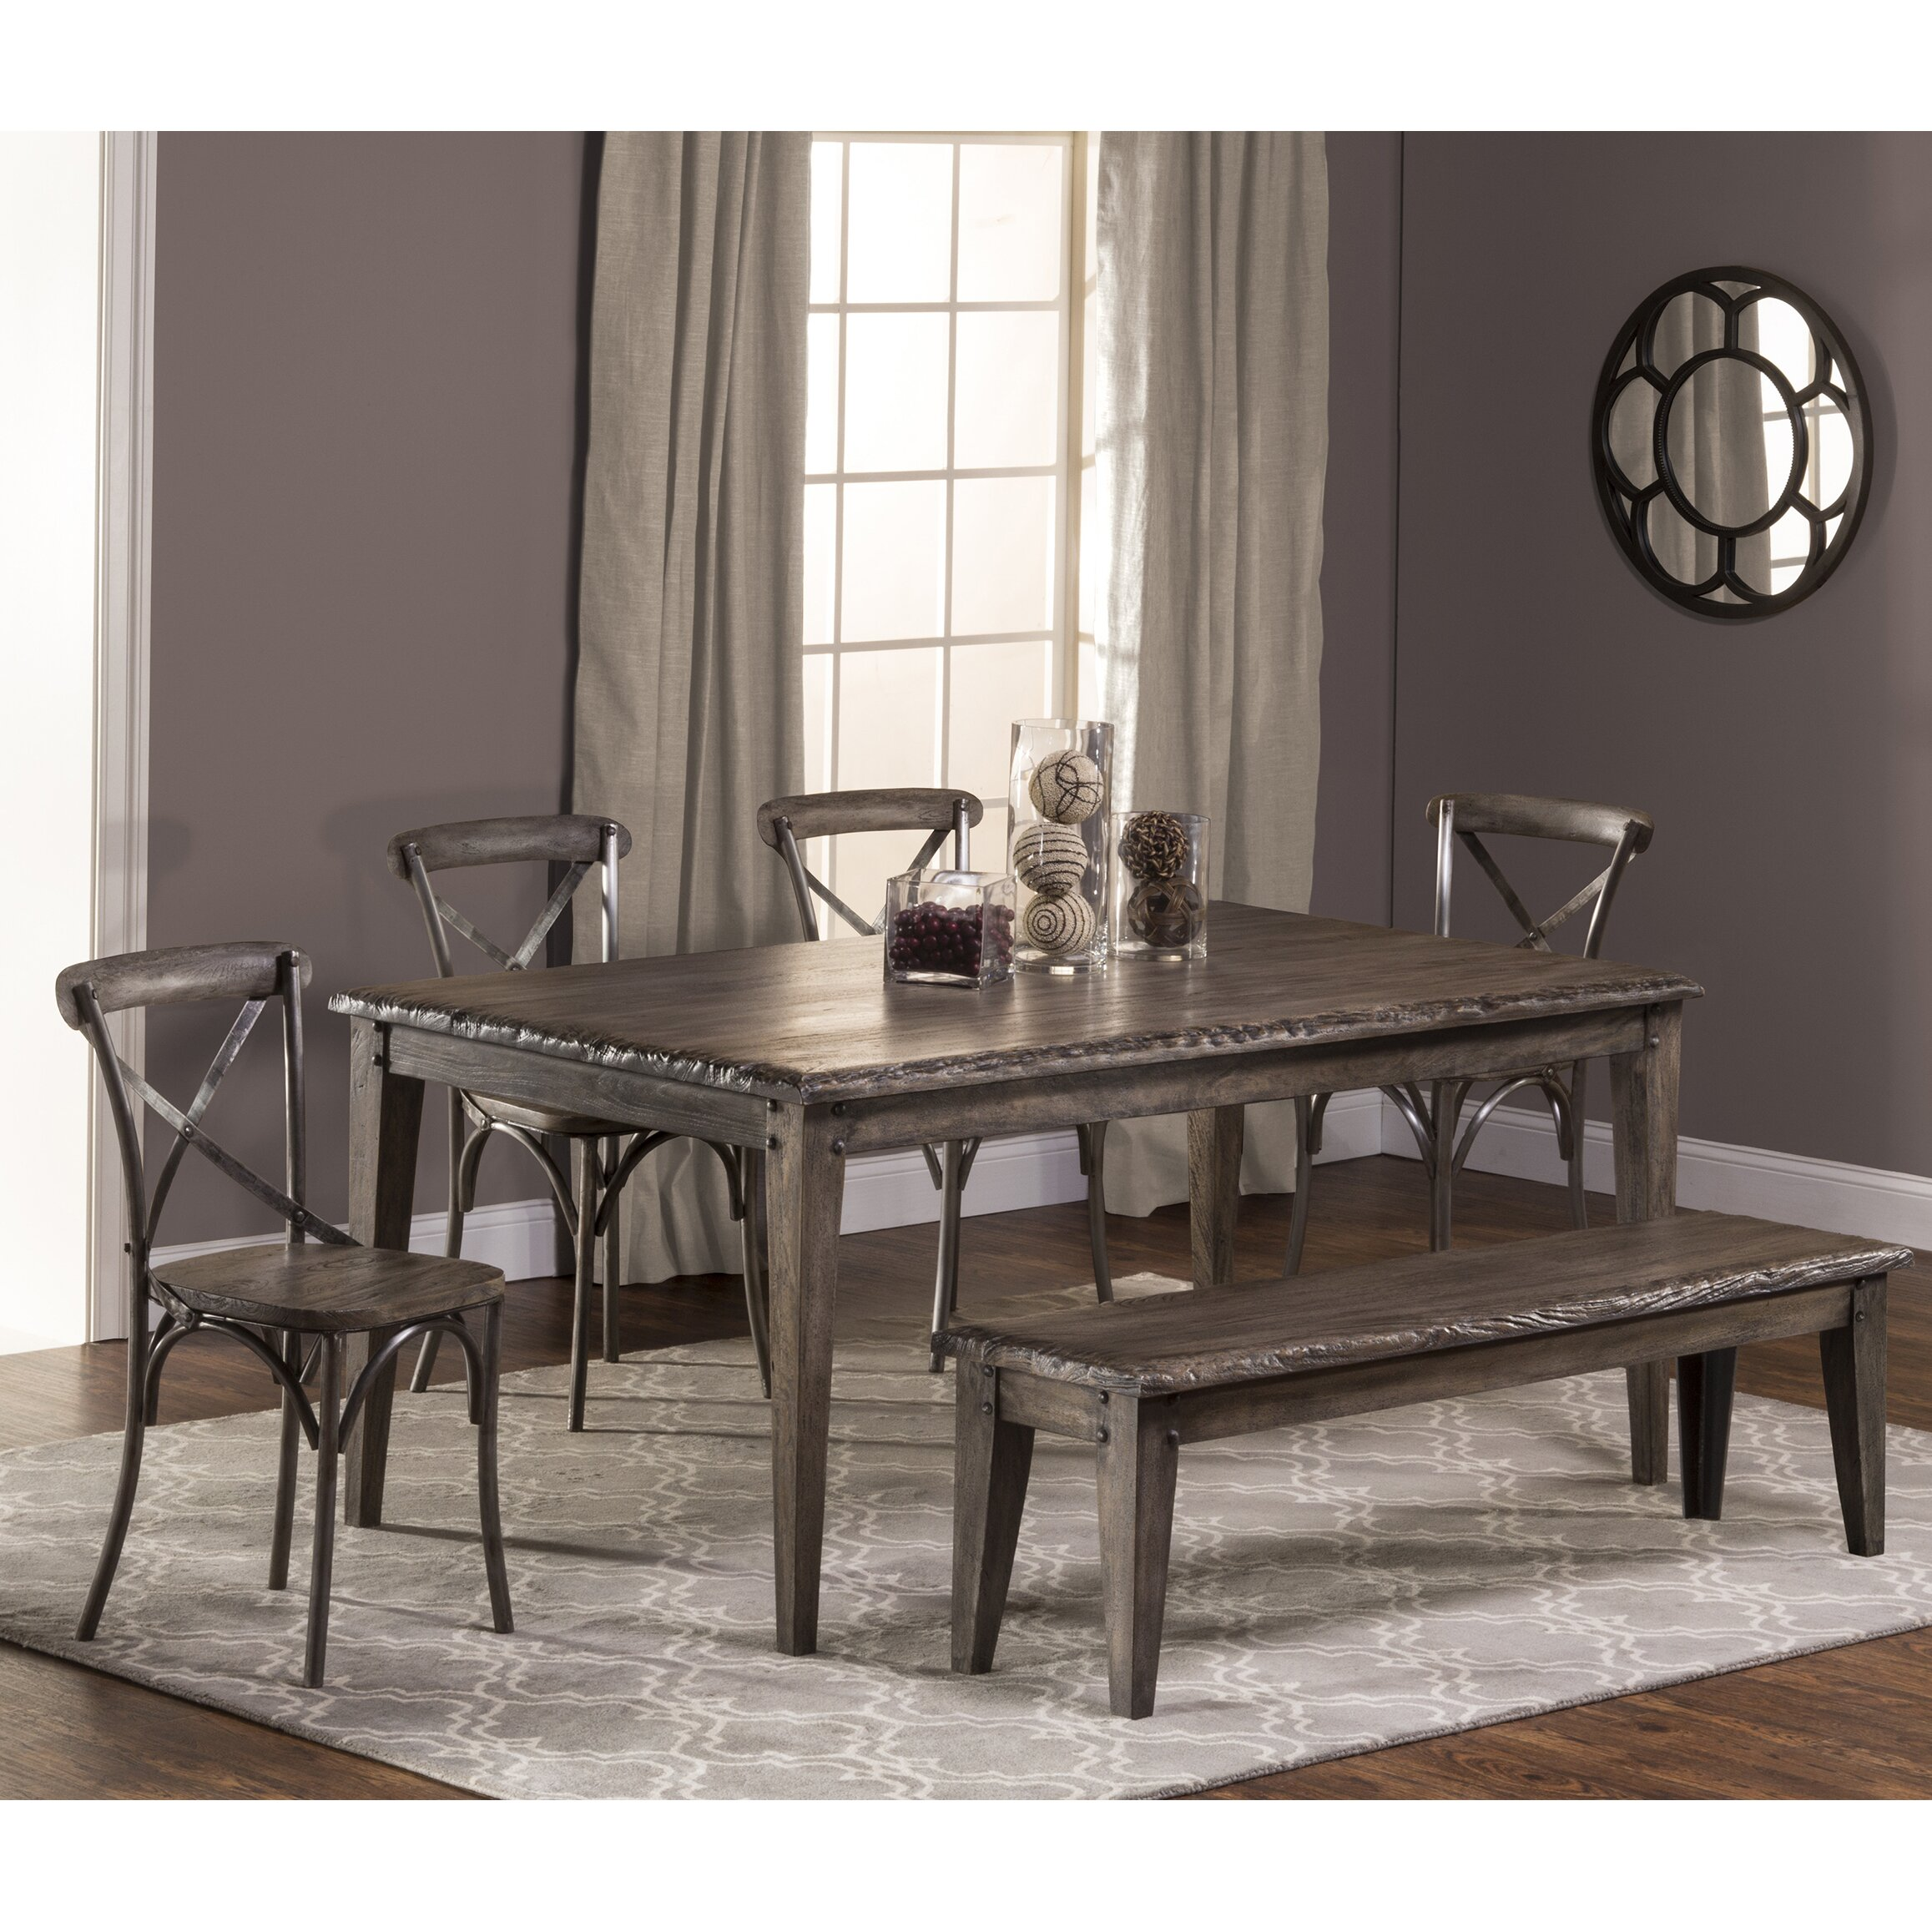 Hillsdale lorient 6 piece dining set wayfair for 6 piece dining room set